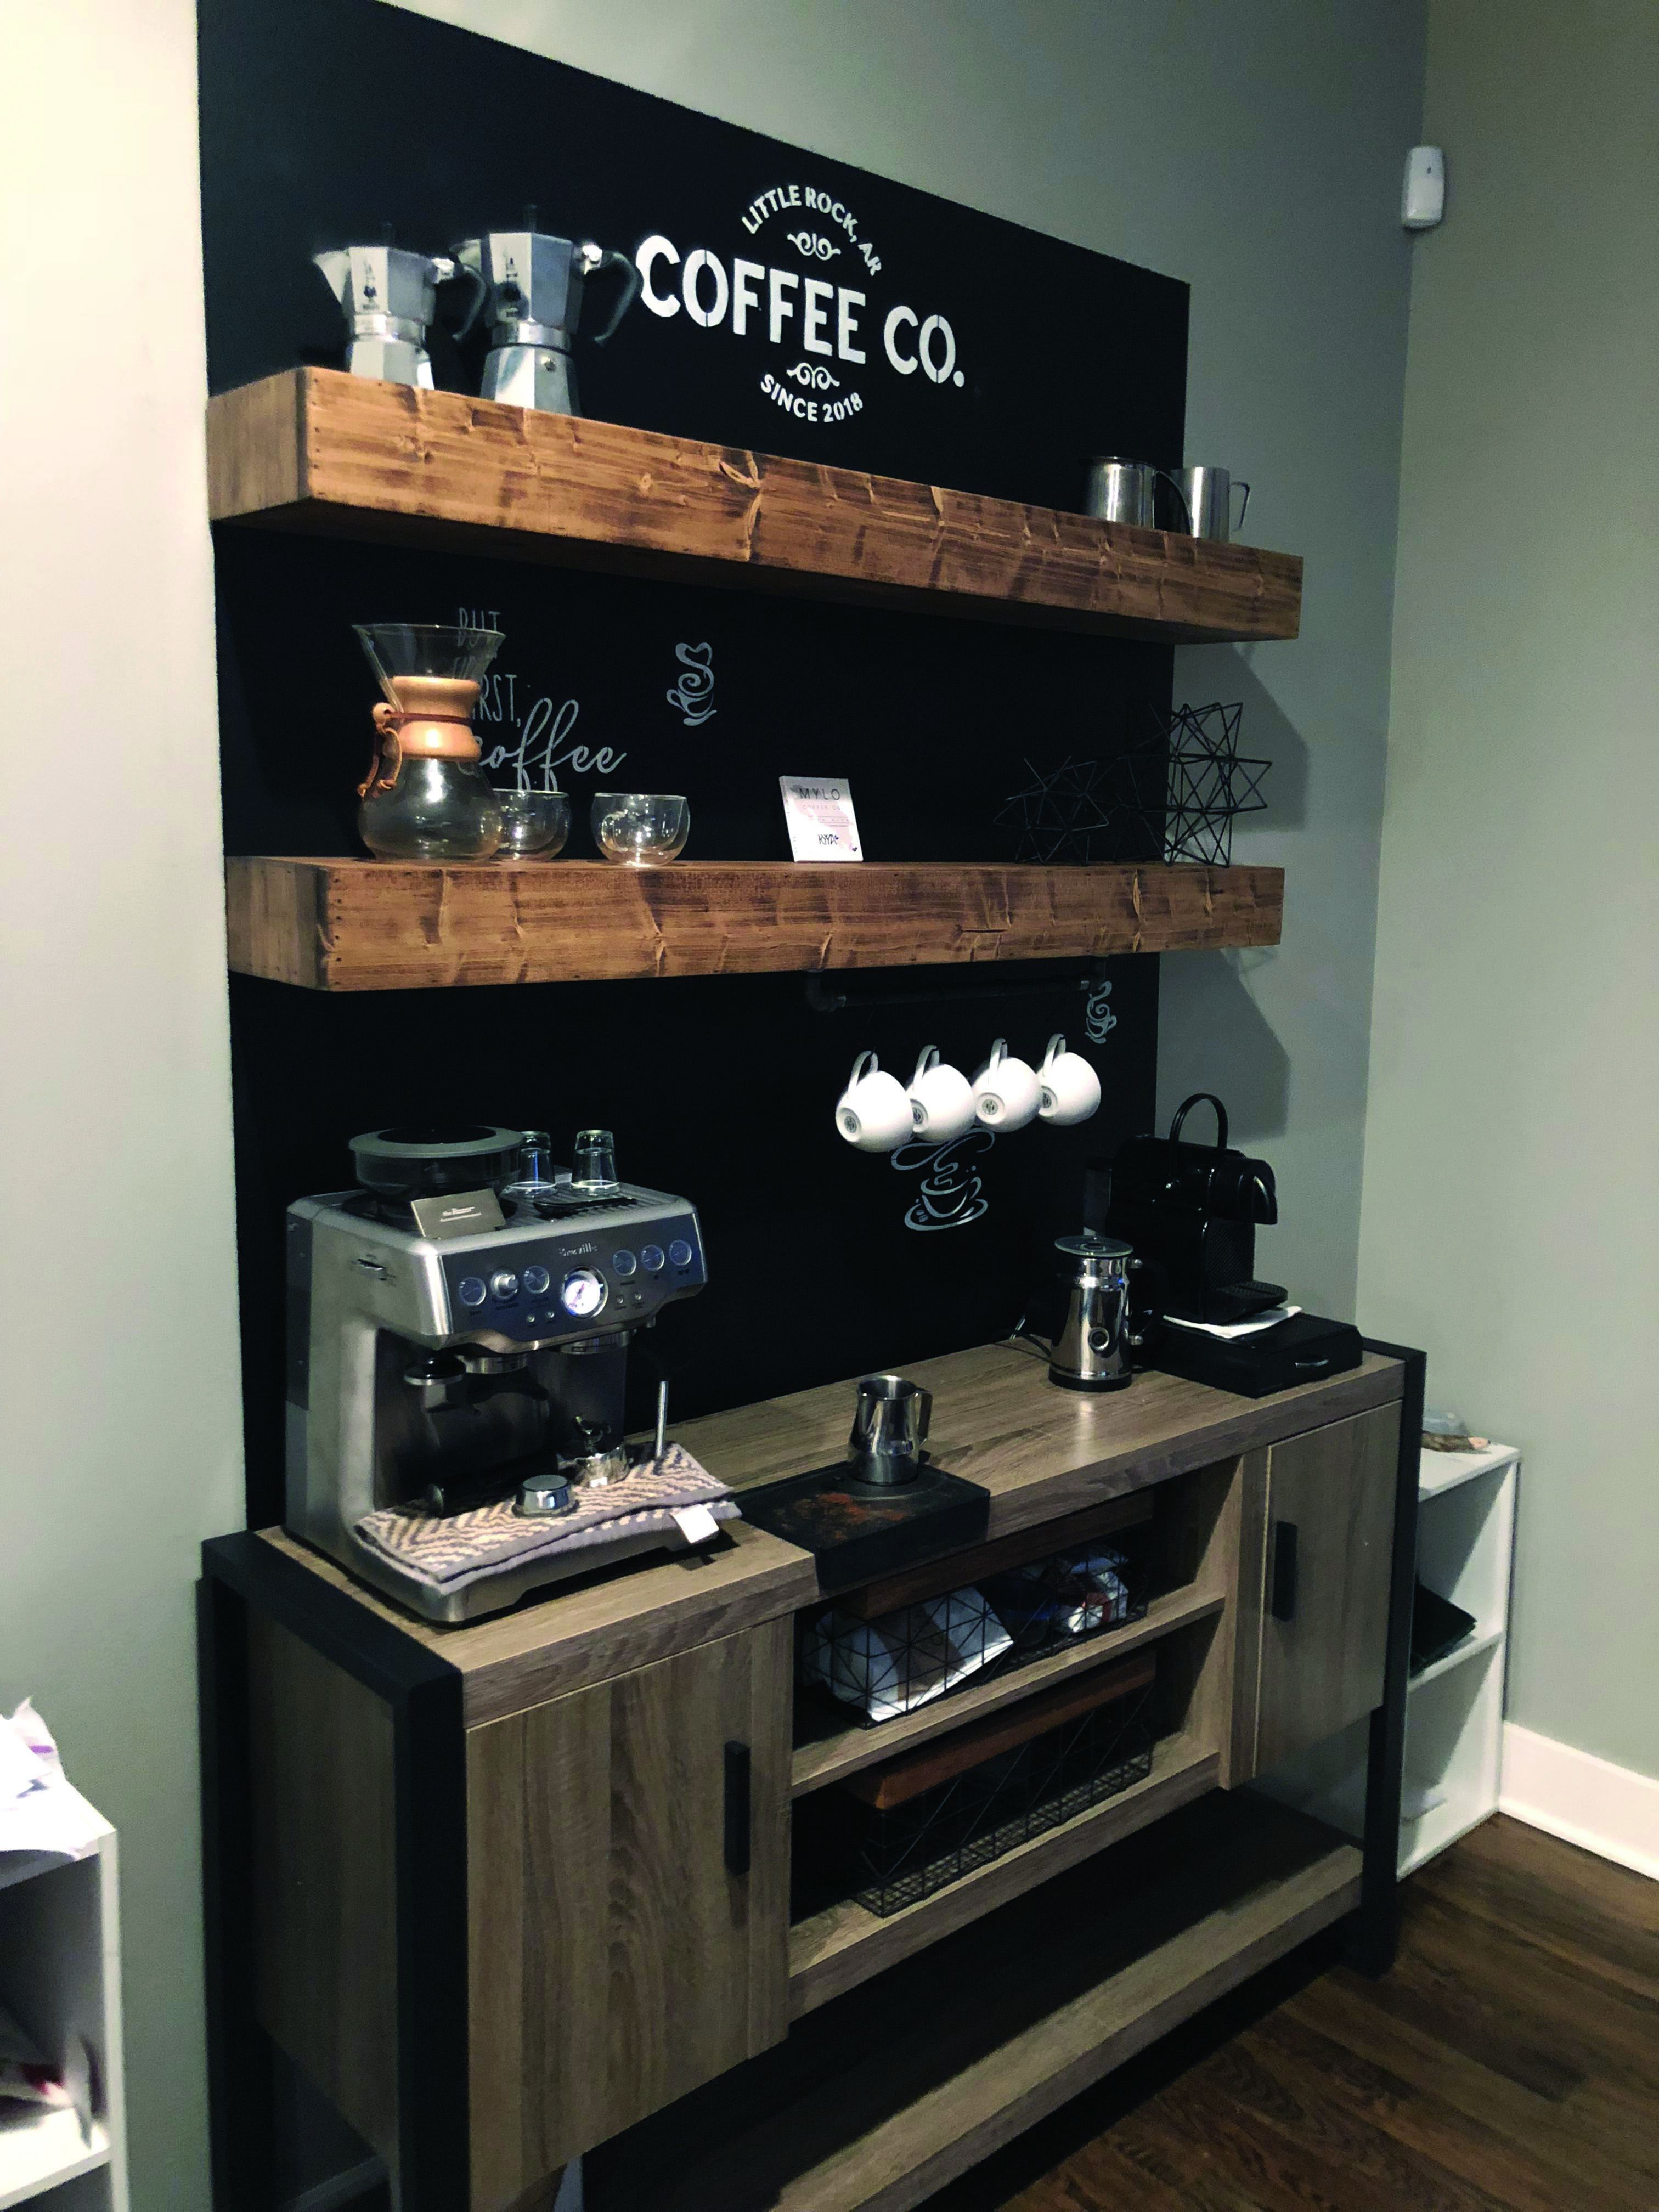 11 Most Popular Mini Coffee Bar Design Ideas For your Home